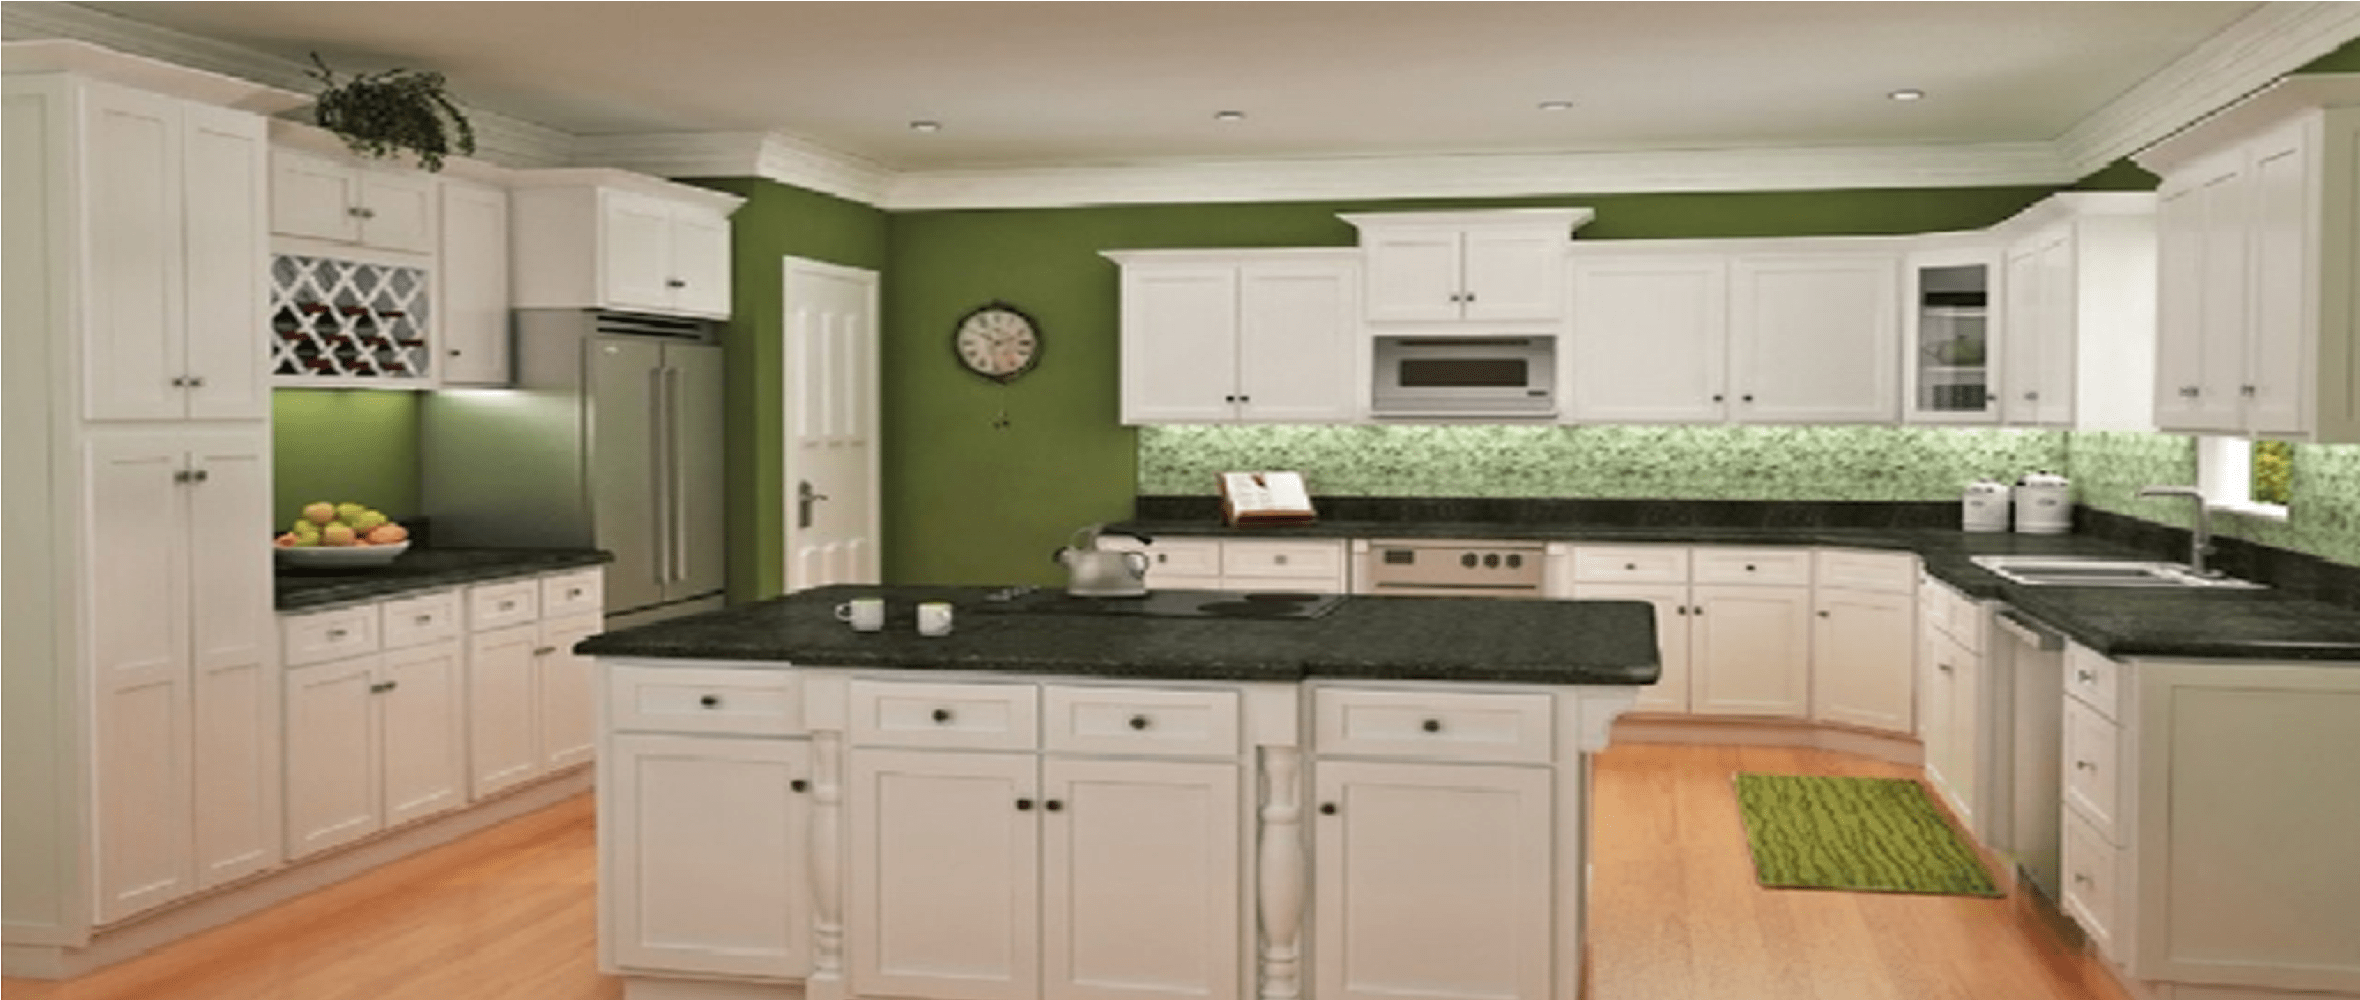 Kitchen Cabinet Refinishing Lancaster Pa Used Kitchen Cabinets In Lancaster Pa Kitchen Cabinets